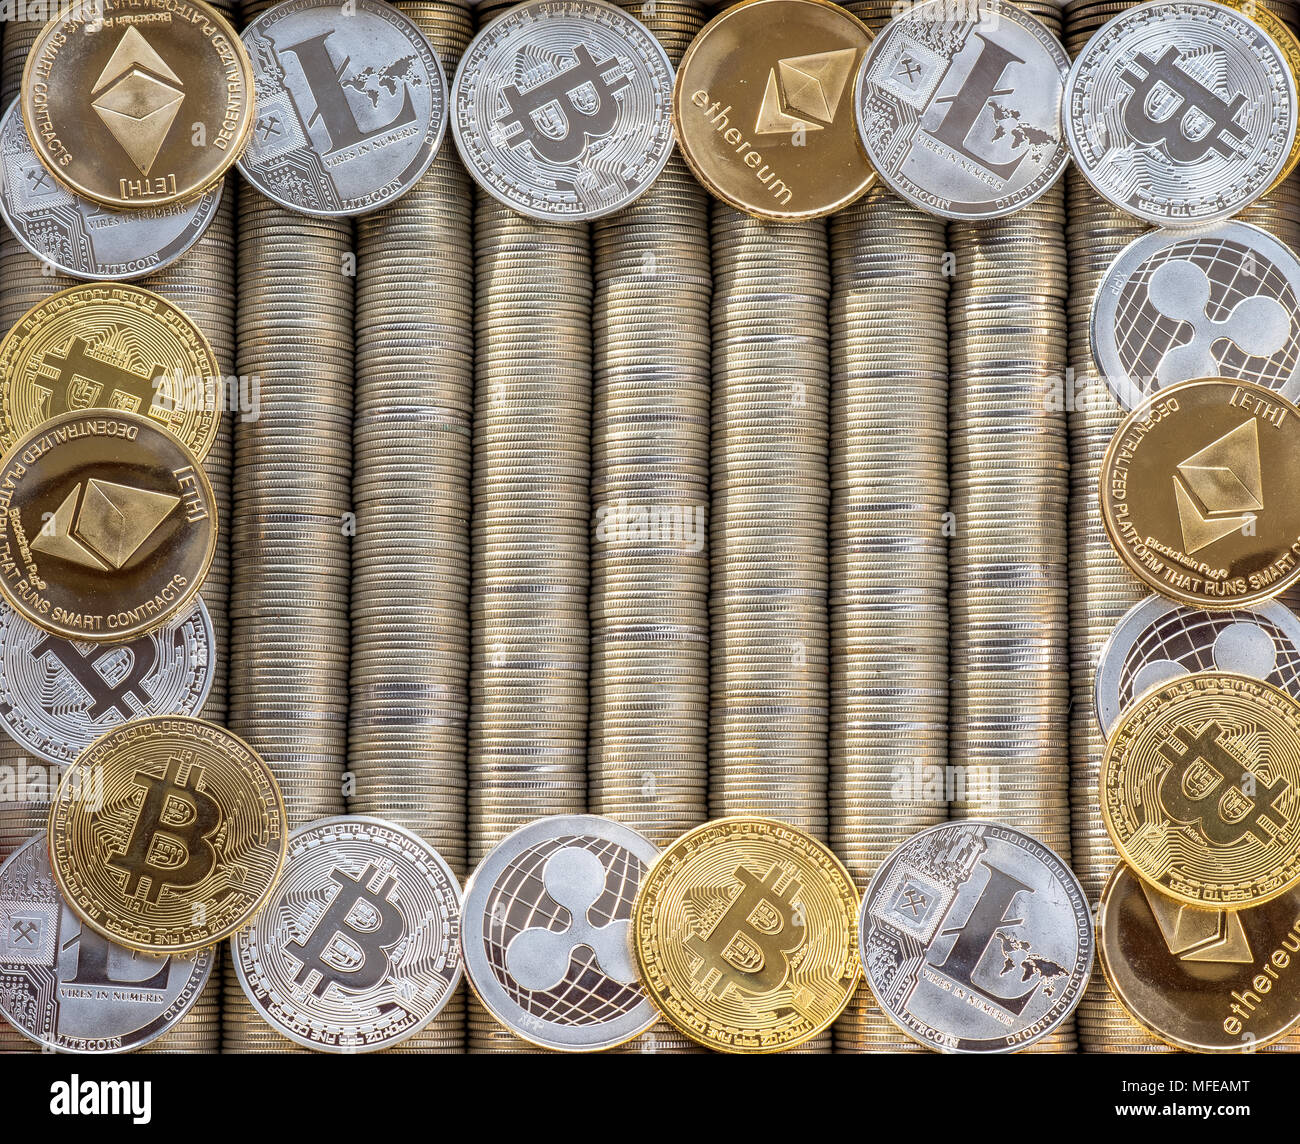 Silver Gold Crypto coins Ethereum ETH, Ripple XRP, Litecoin